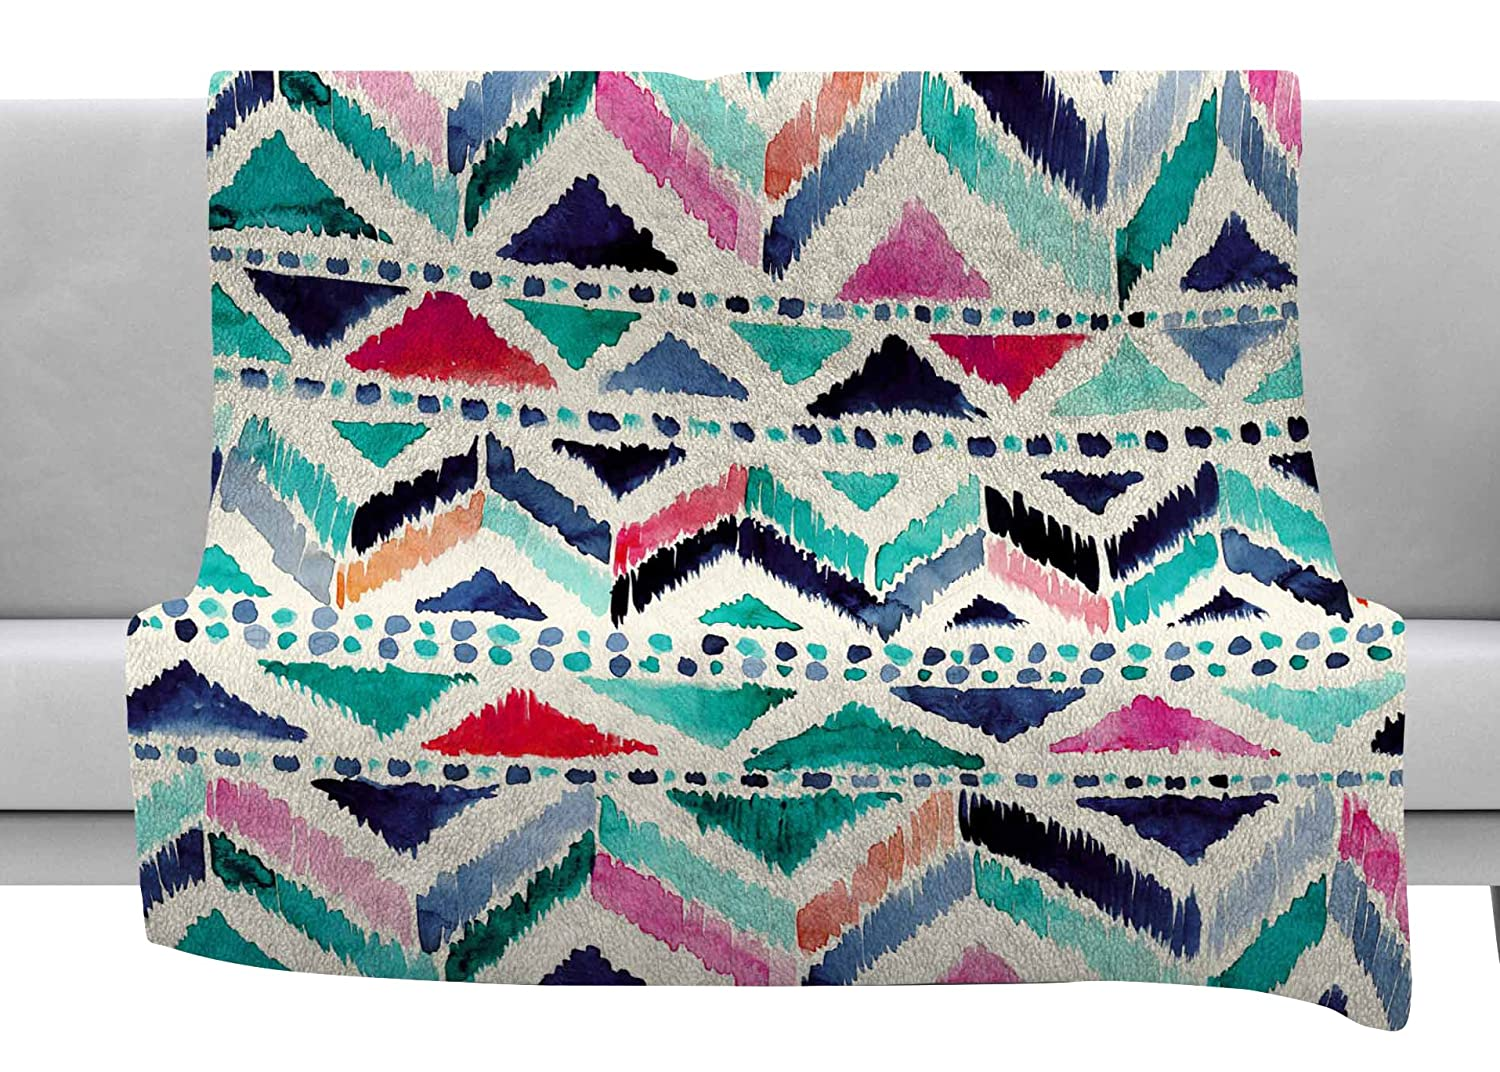 Kess InHouse Crystal Walen Celestial Tribal Stripe Teal Chevron Throw 80 x 60 Fleece Blanket